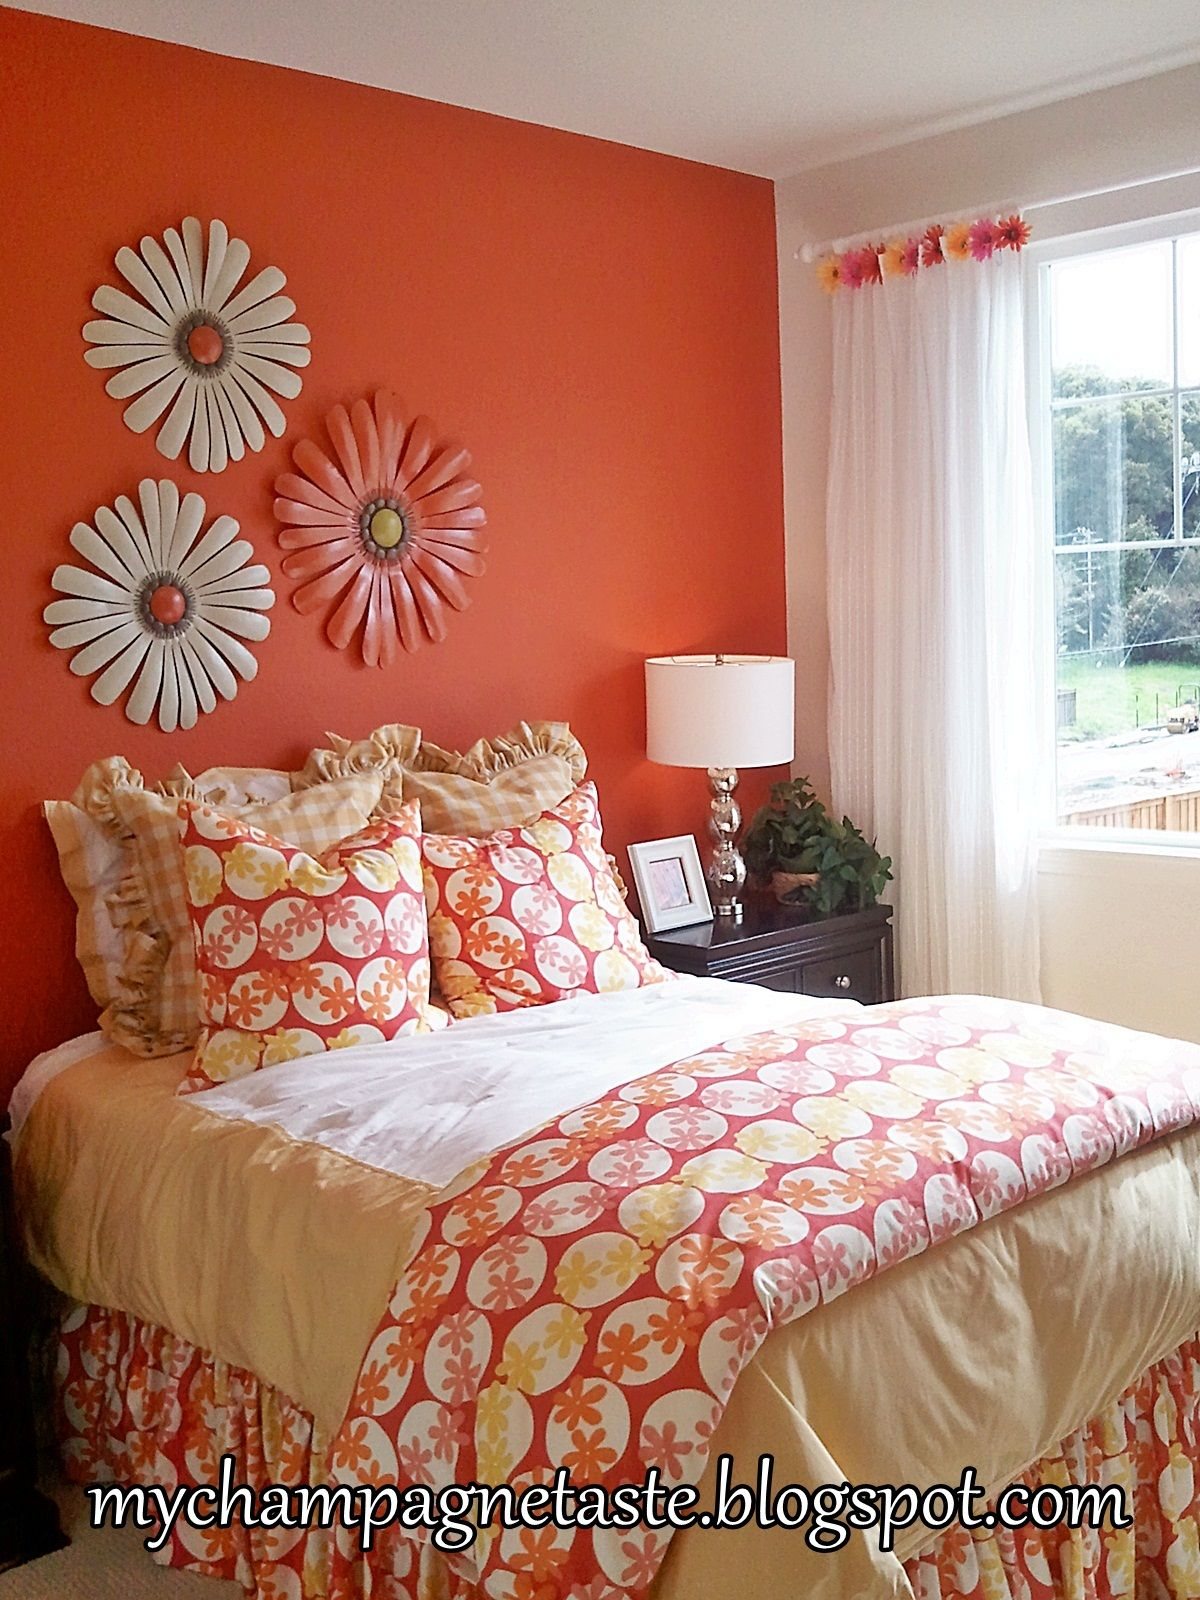 This Would Look Really Nice One Wall A Soft Coral Colour With